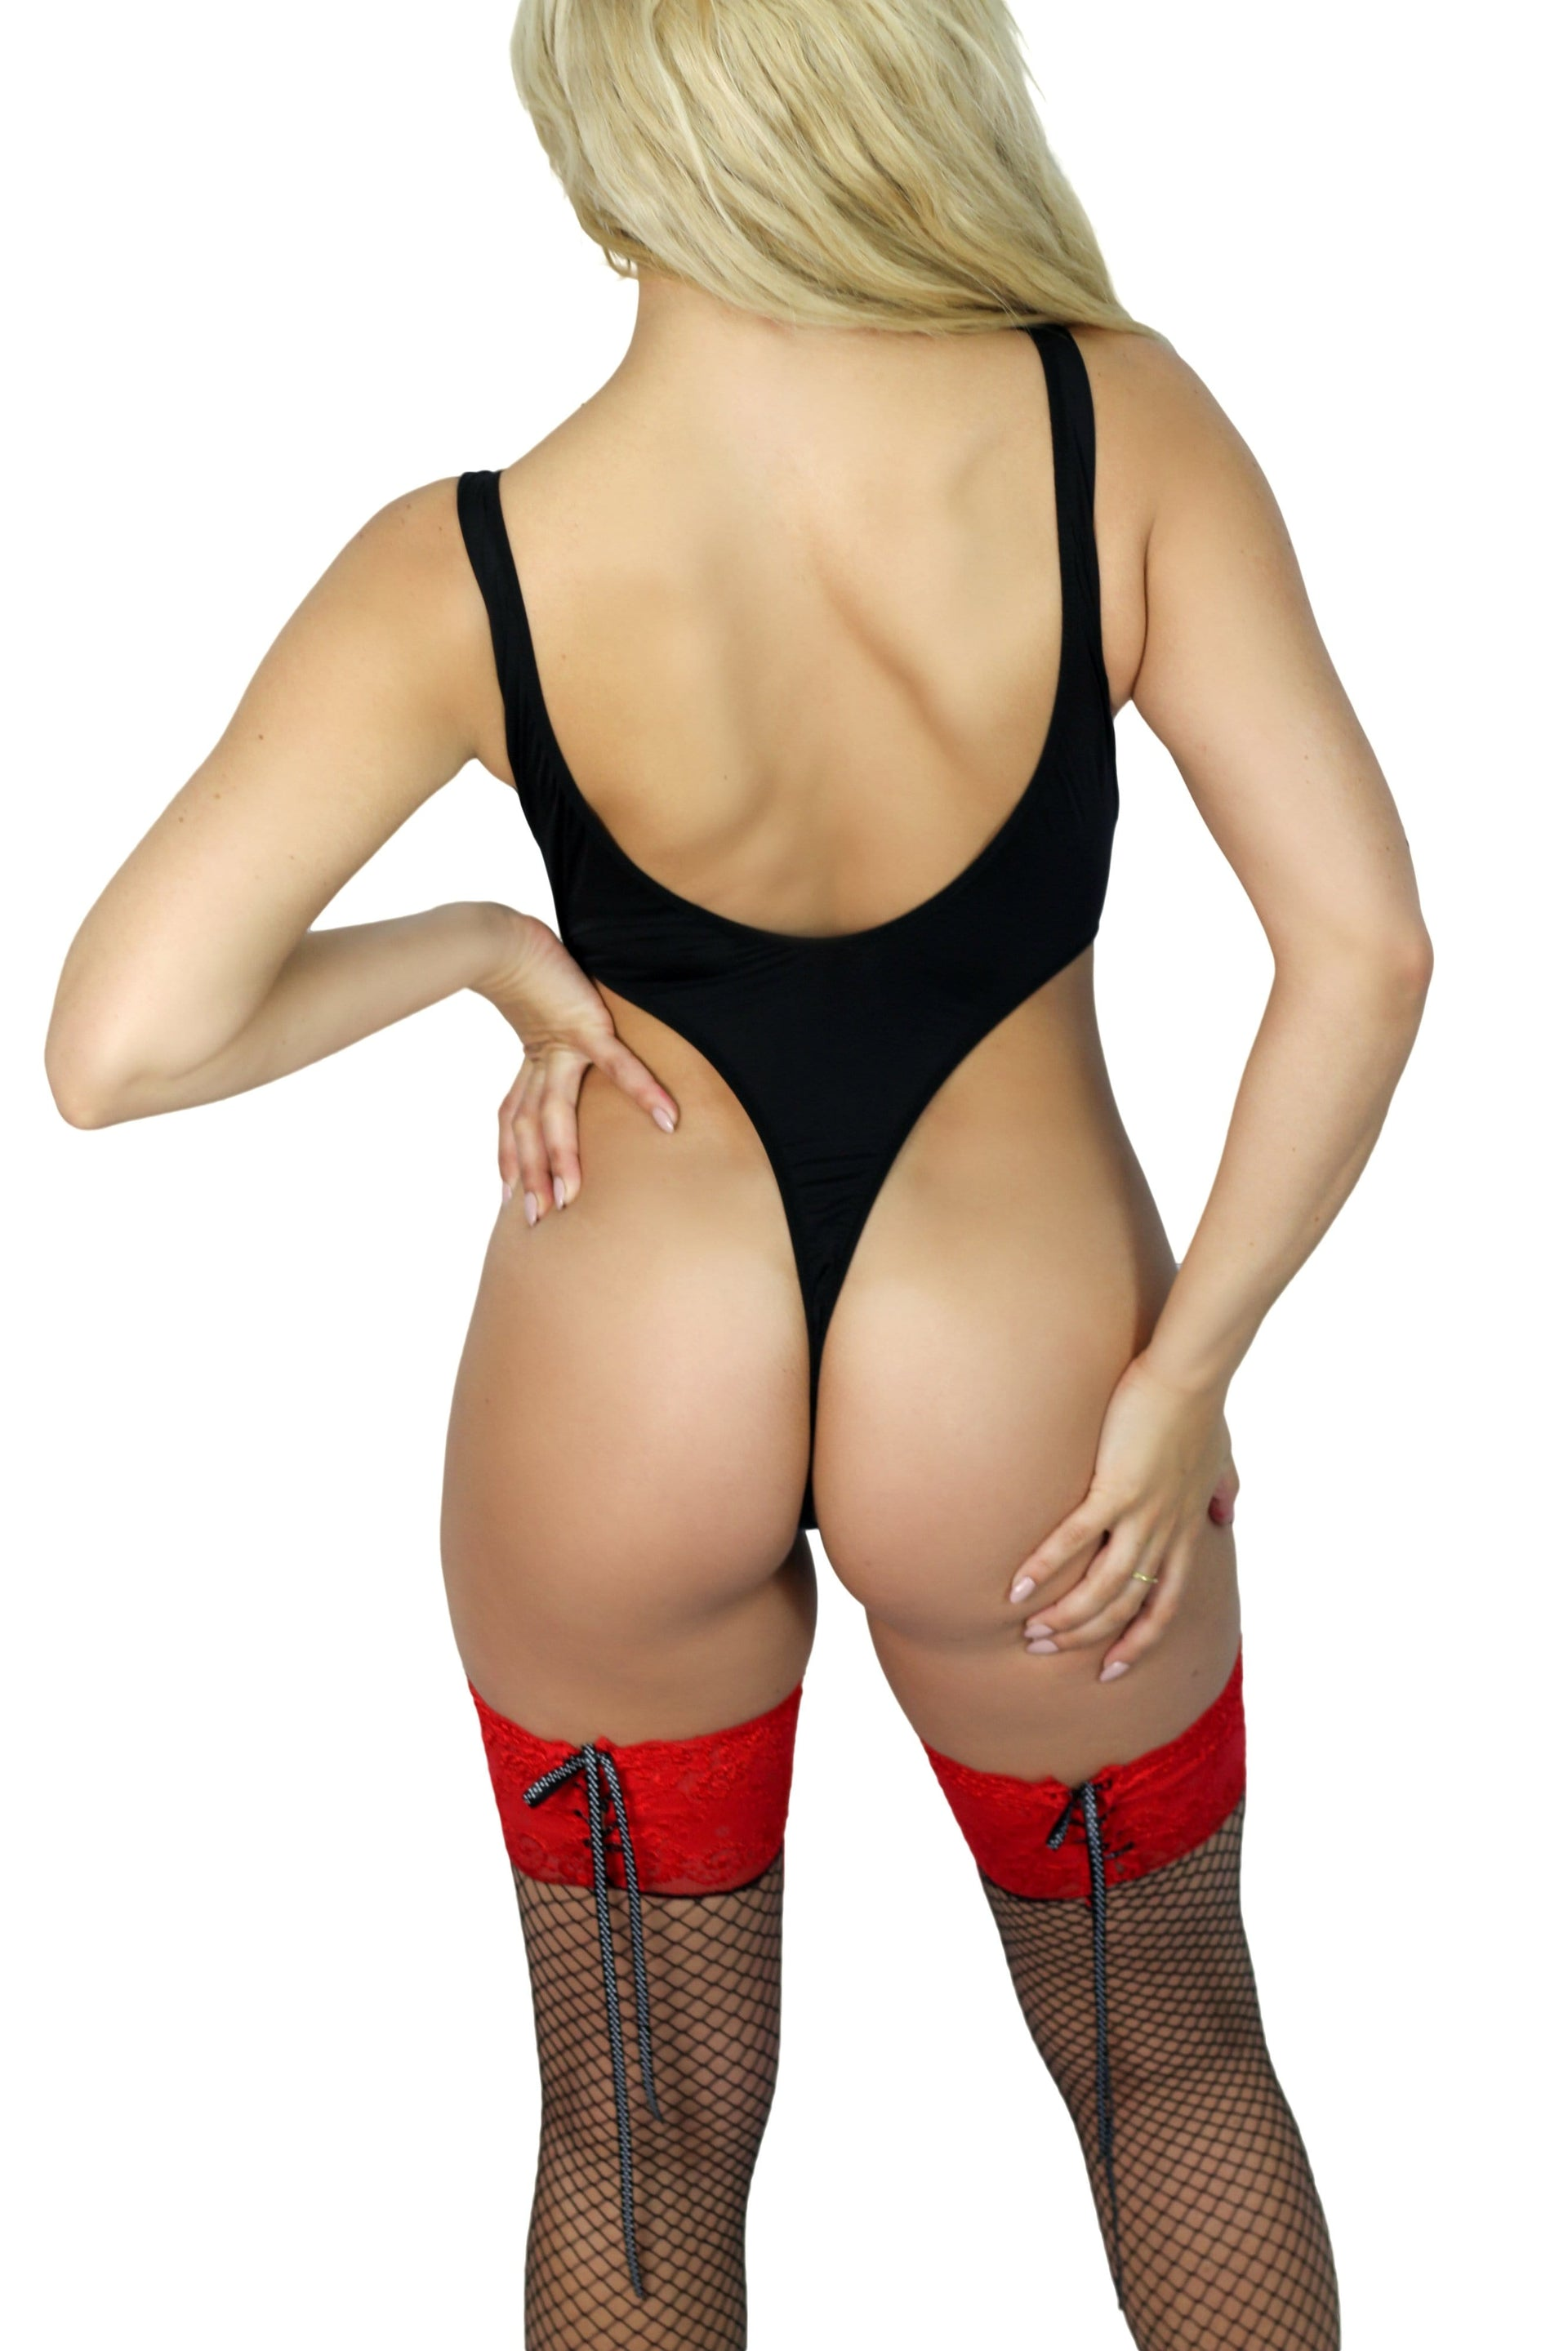 Mulan rouge thigh-high fishnet stockings - Cali Diamond